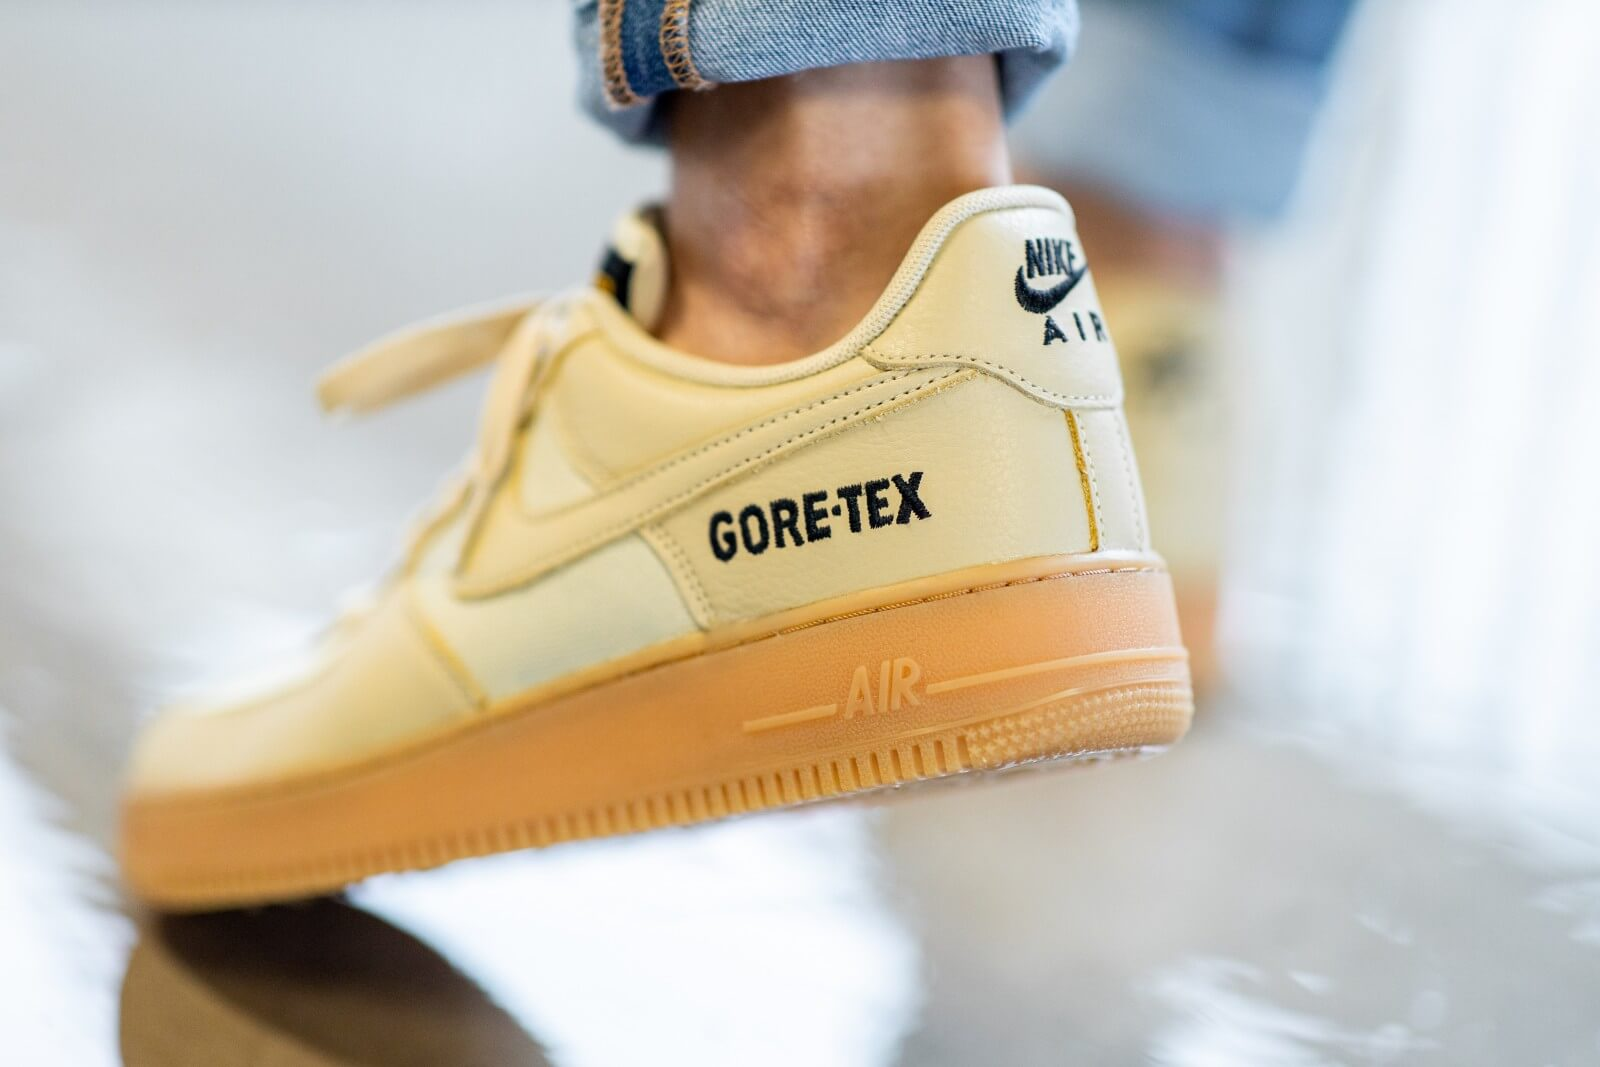 air force 1 gore tex kaki